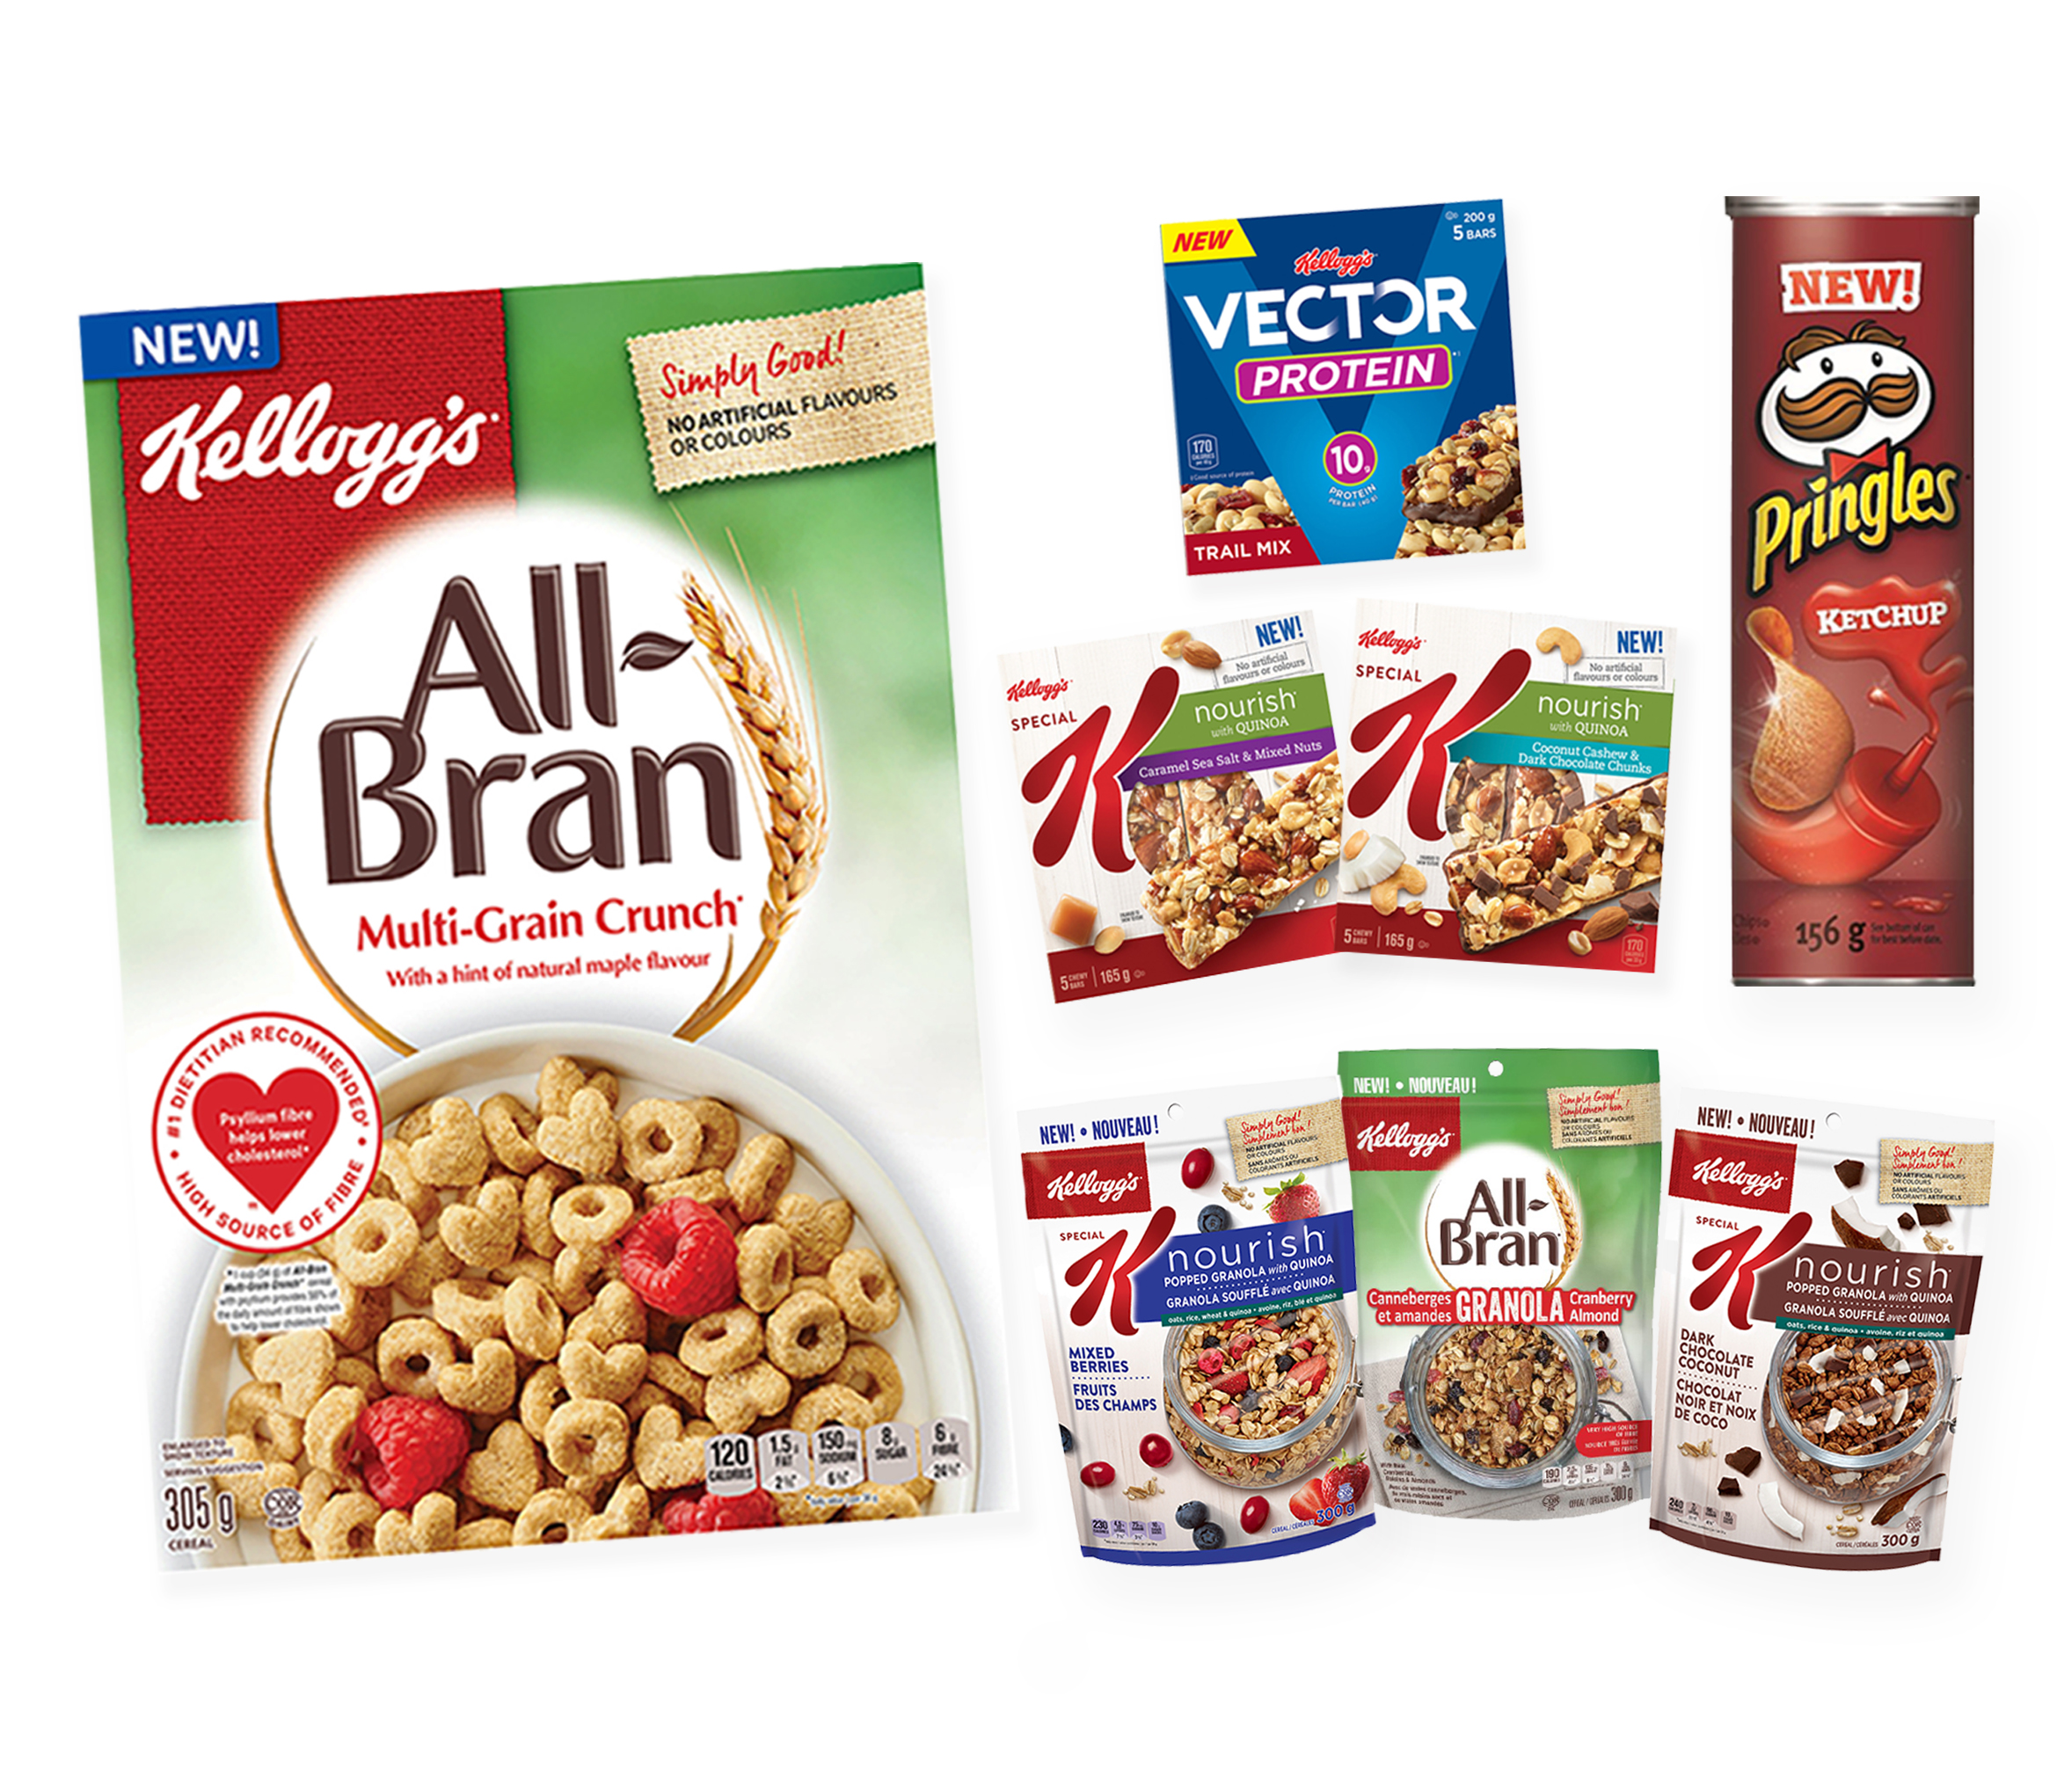 Amazing New Products From Kellogg's Canada Are Here + GIVEAWAY!